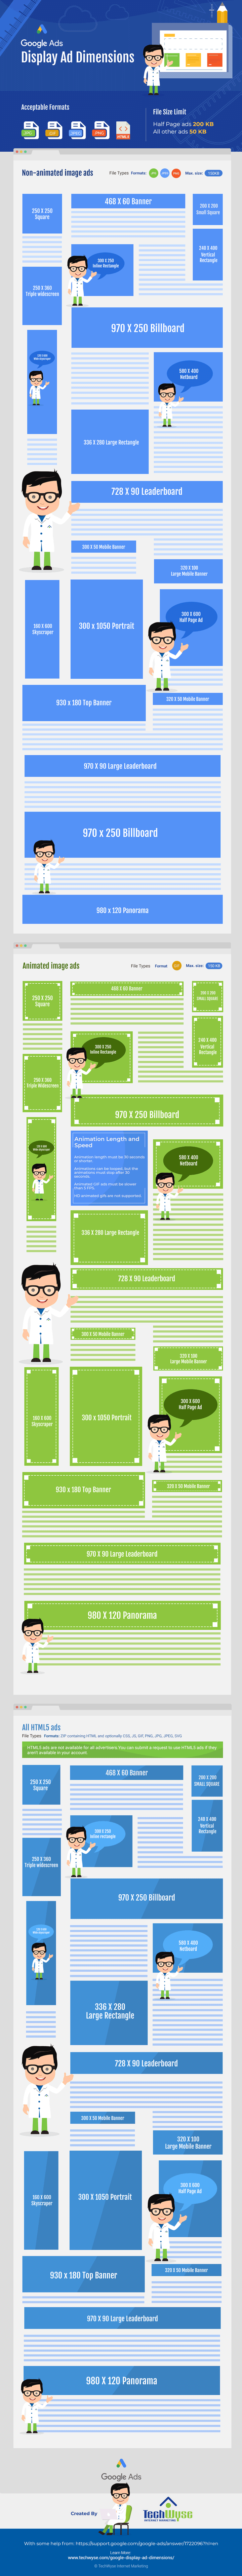 Google display ad dimensions infographic